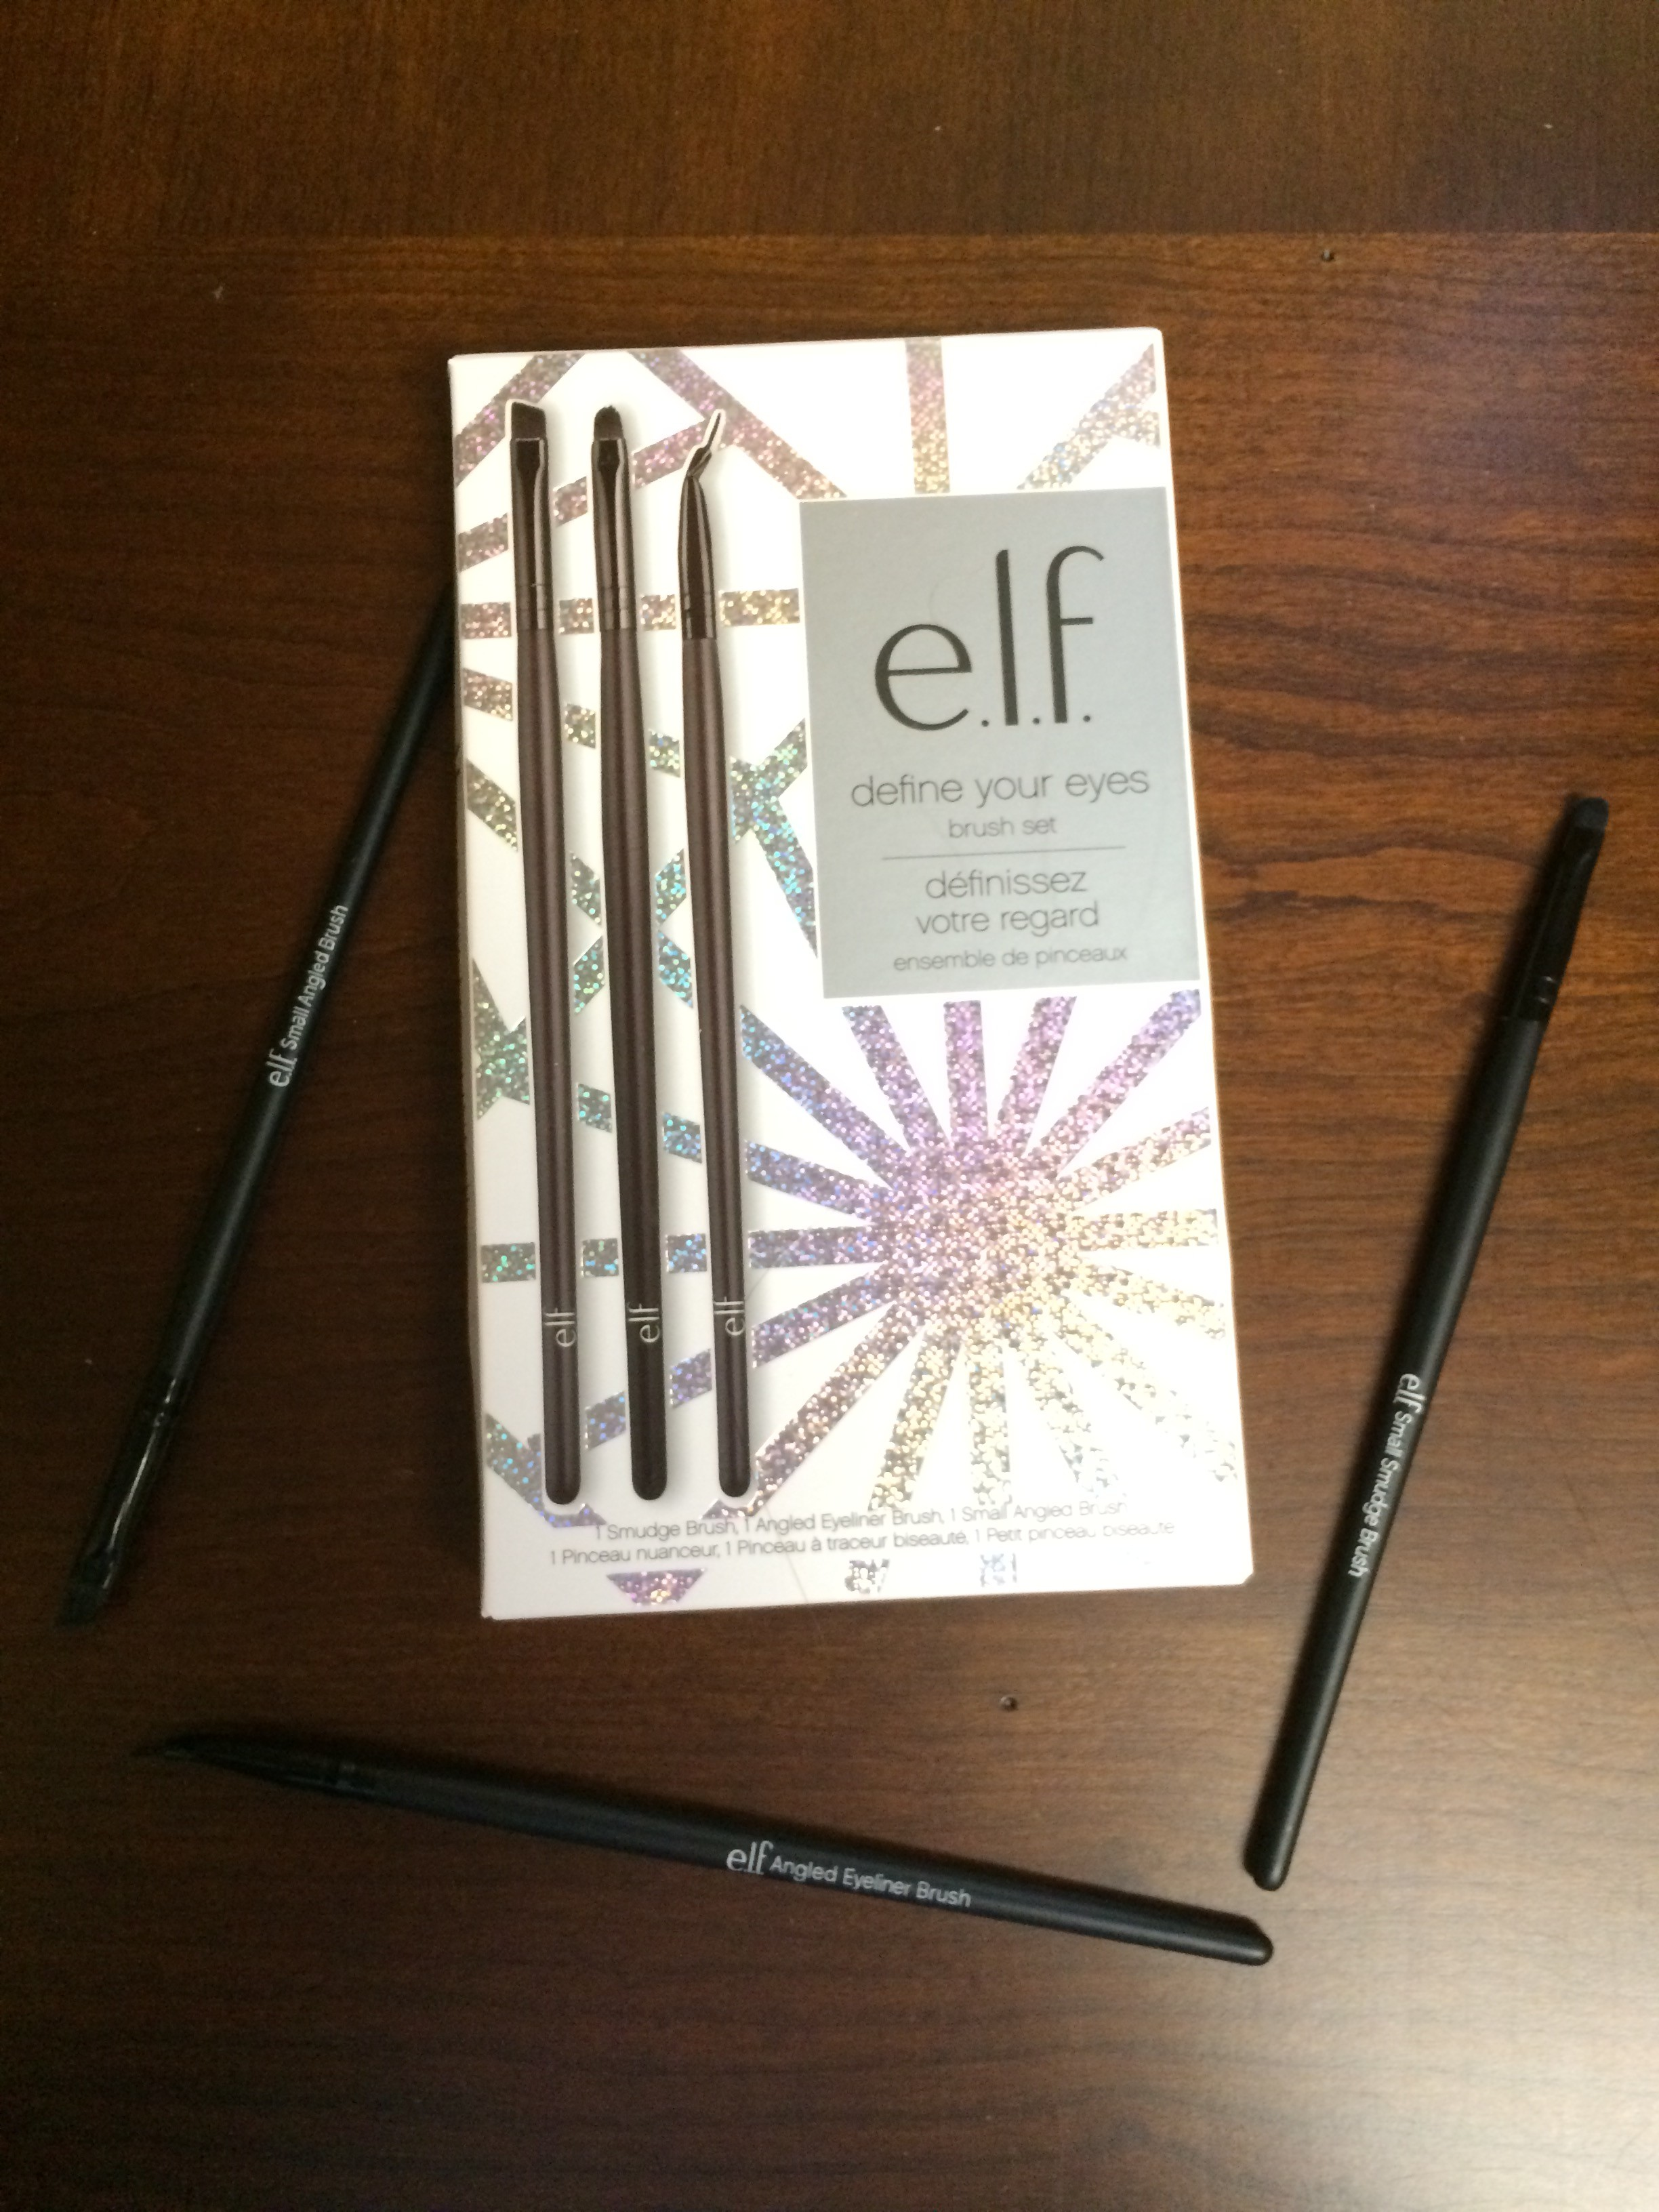 e.l.f. define your eyes brush set